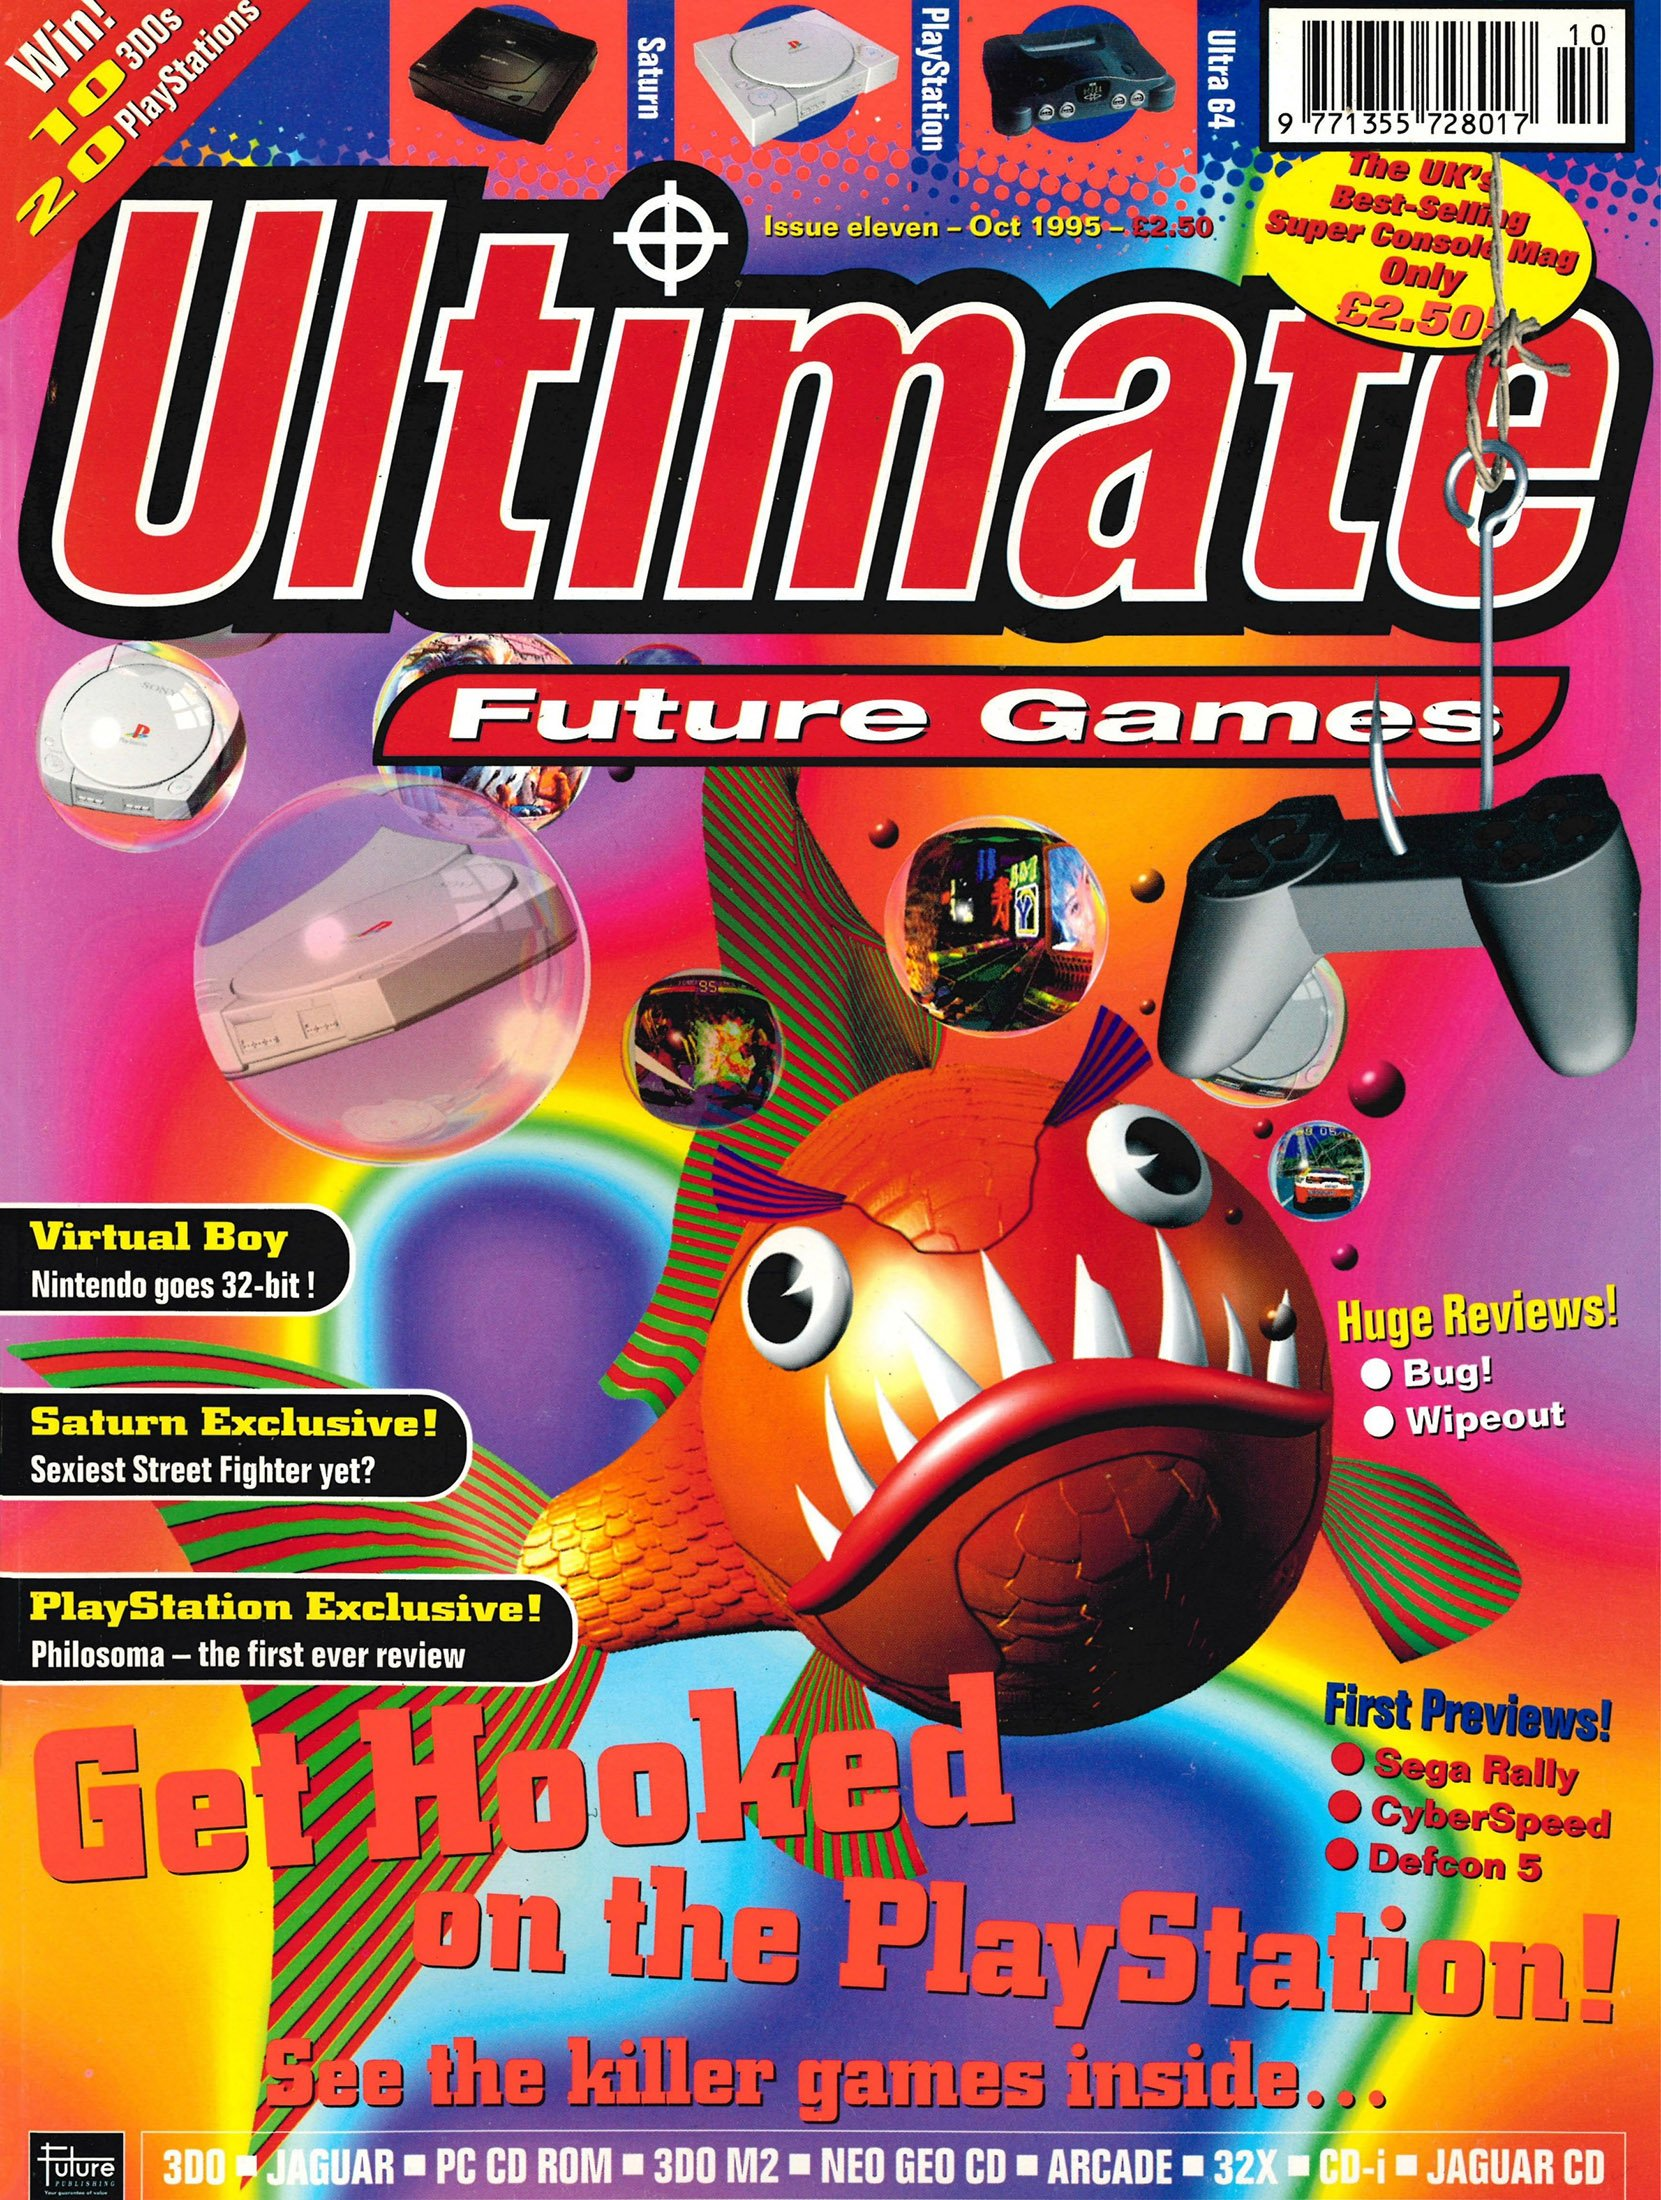 Ultimate Future Games 11 (October 1995)